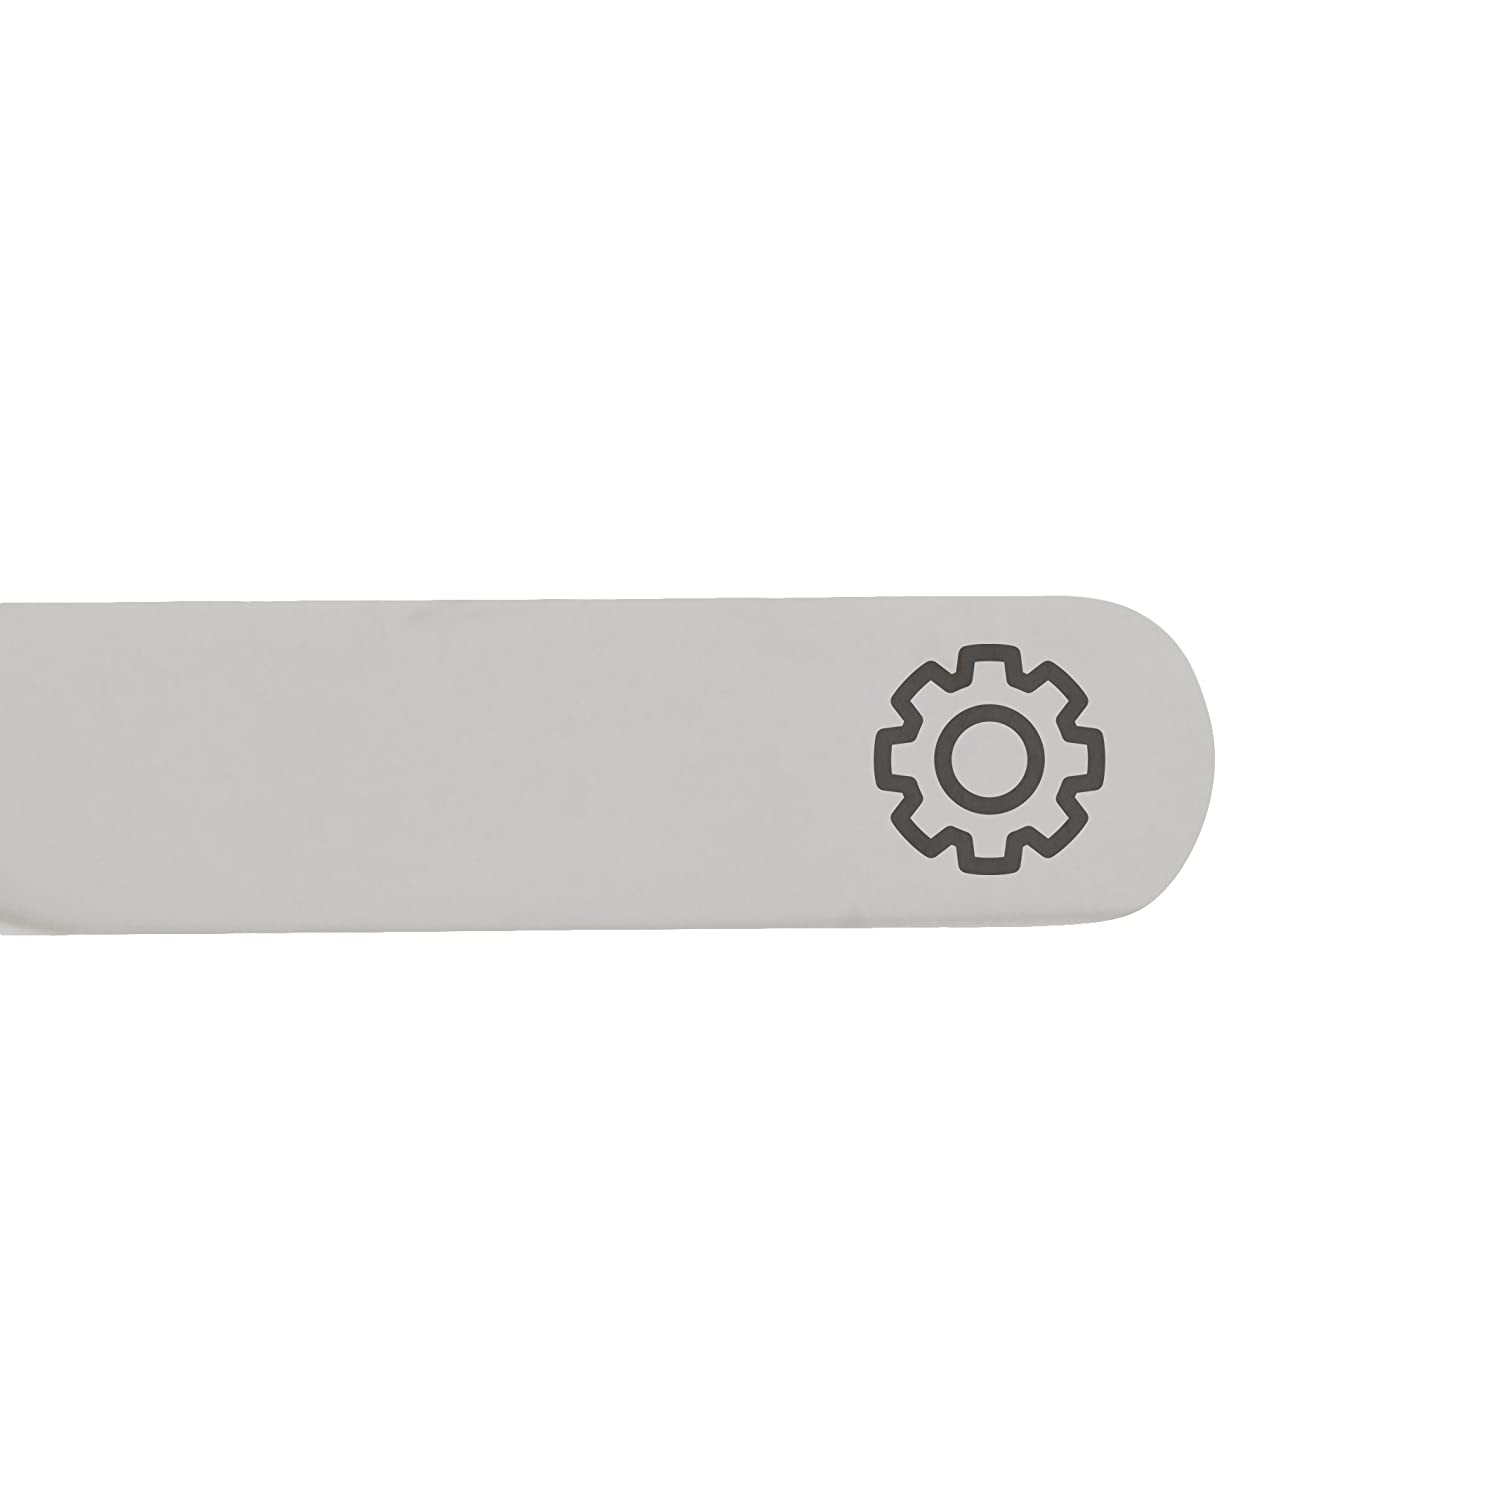 2.5 Inch Metal Collar Stiffeners Made In USA MODERN GOODS SHOP Stainless Steel Collar Stays With Laser Engraved Gear Design